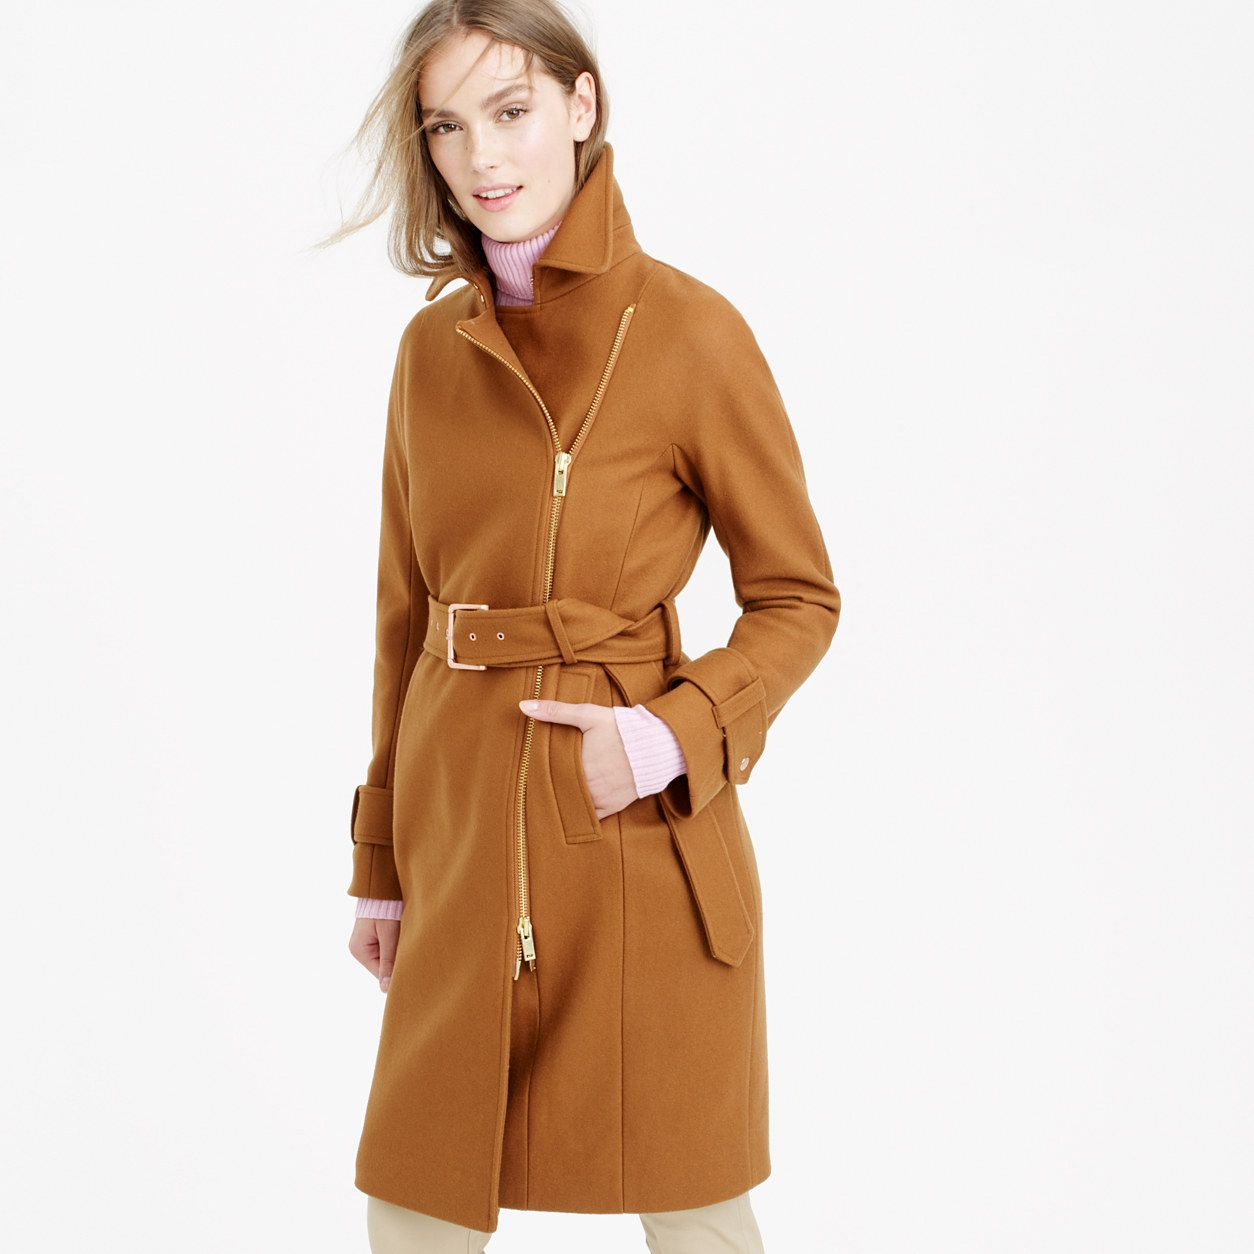 Belted zip trench coat in wool melton : coats & jackets | J.Crew ...